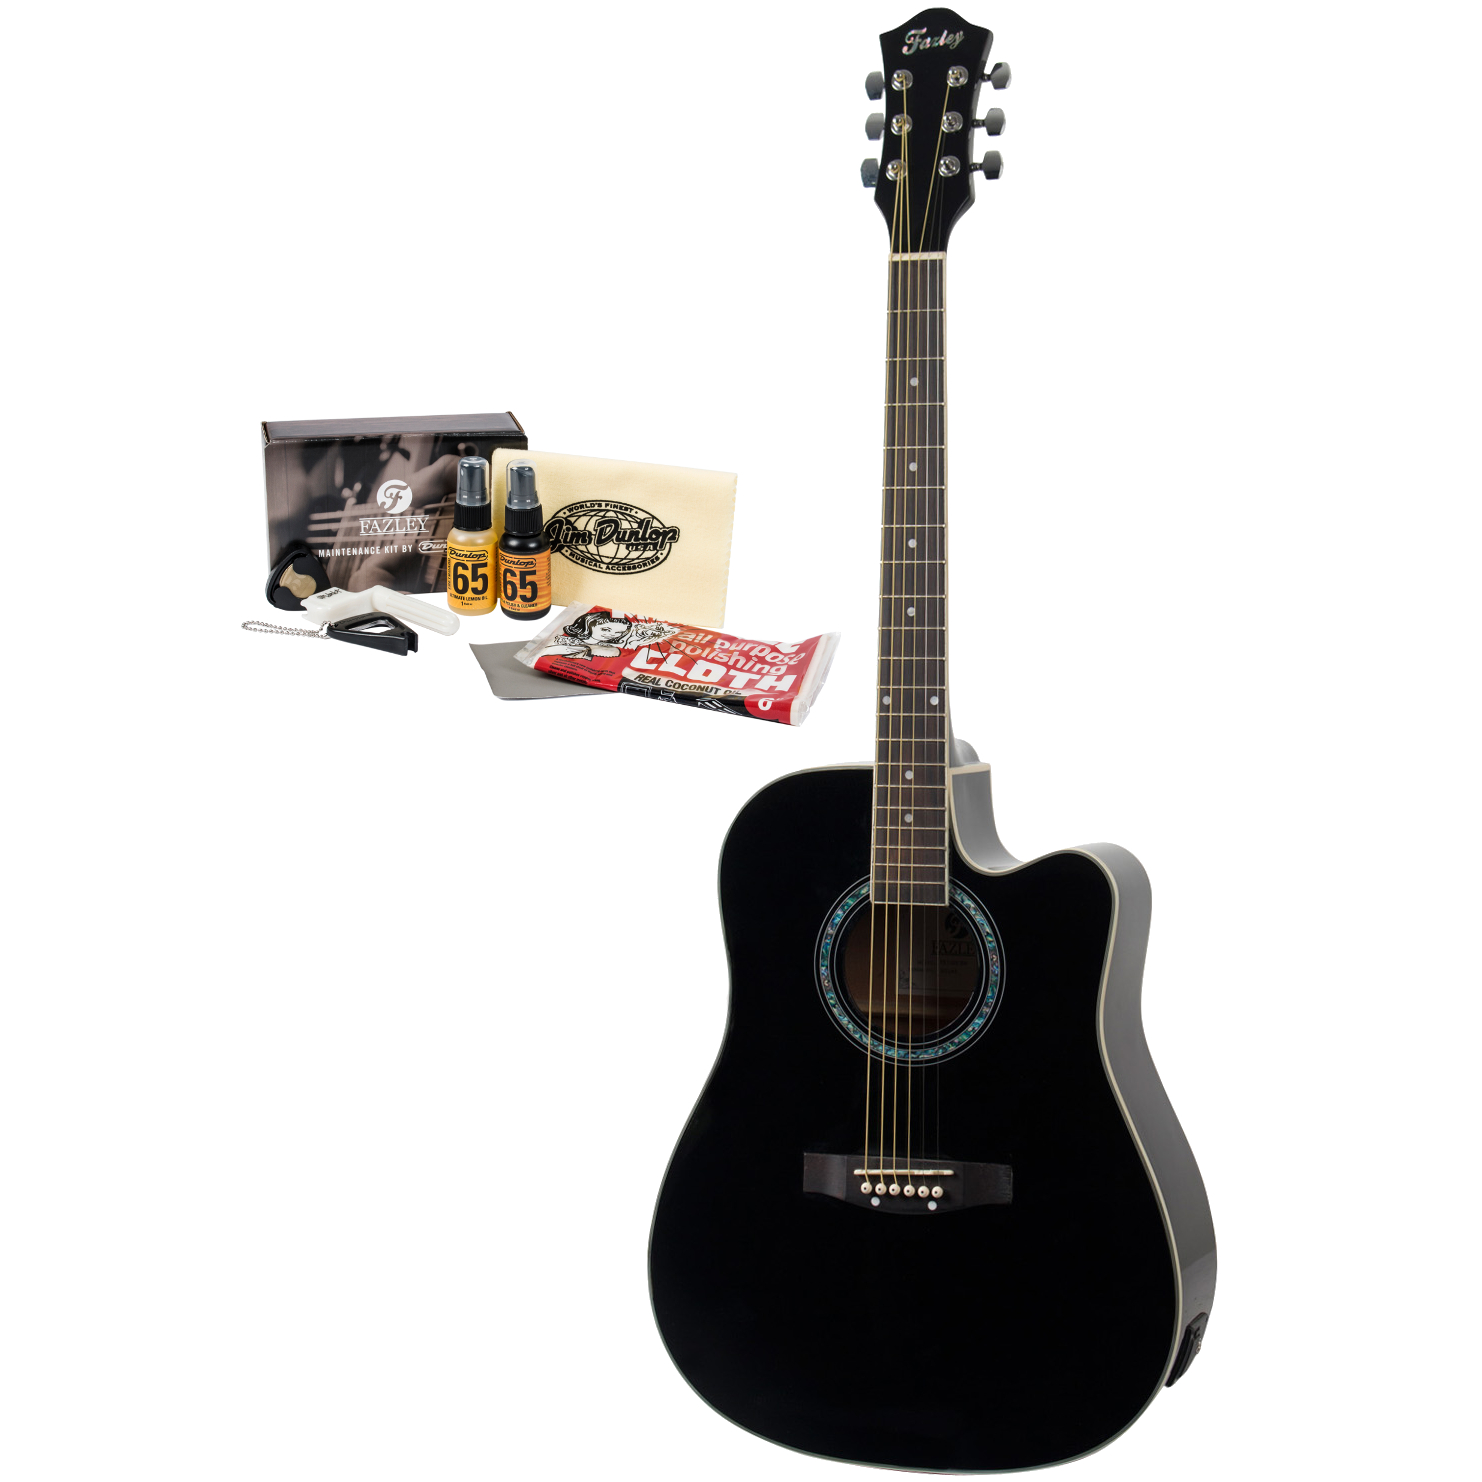 Fazley FE100CBK GAFAZ1 guitar with maintenance kit